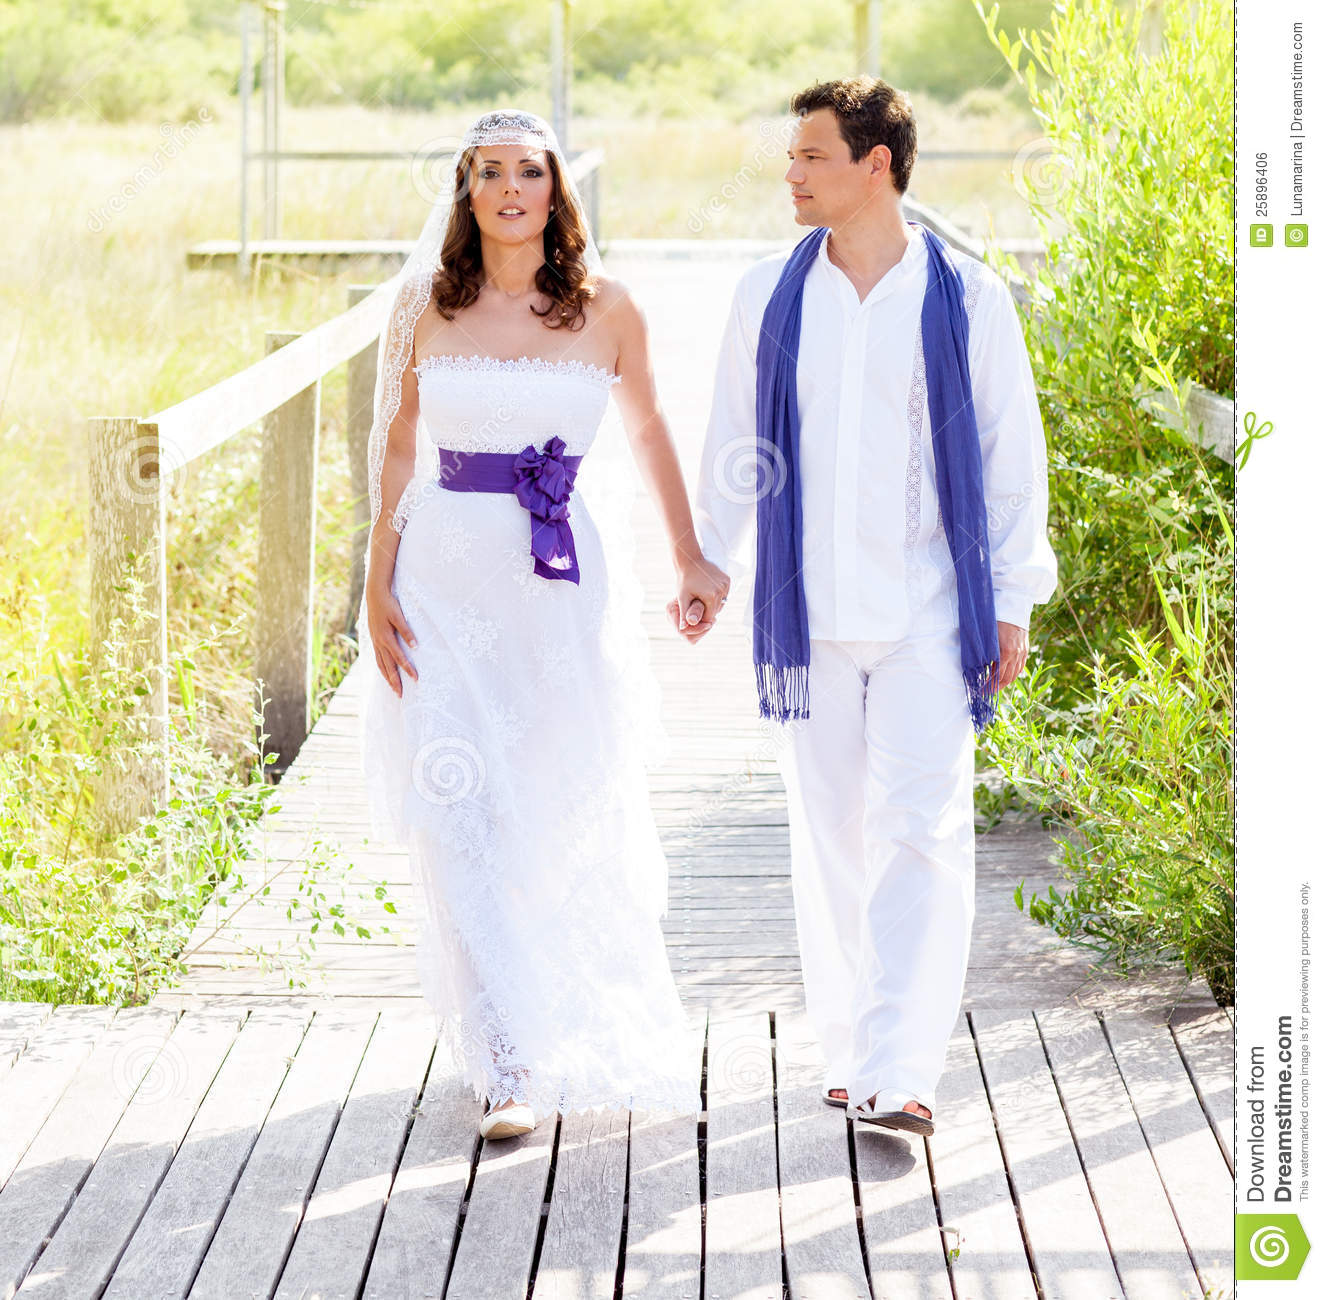 Couple Happy In Wedding Day Walking Outdoor Royalty Free